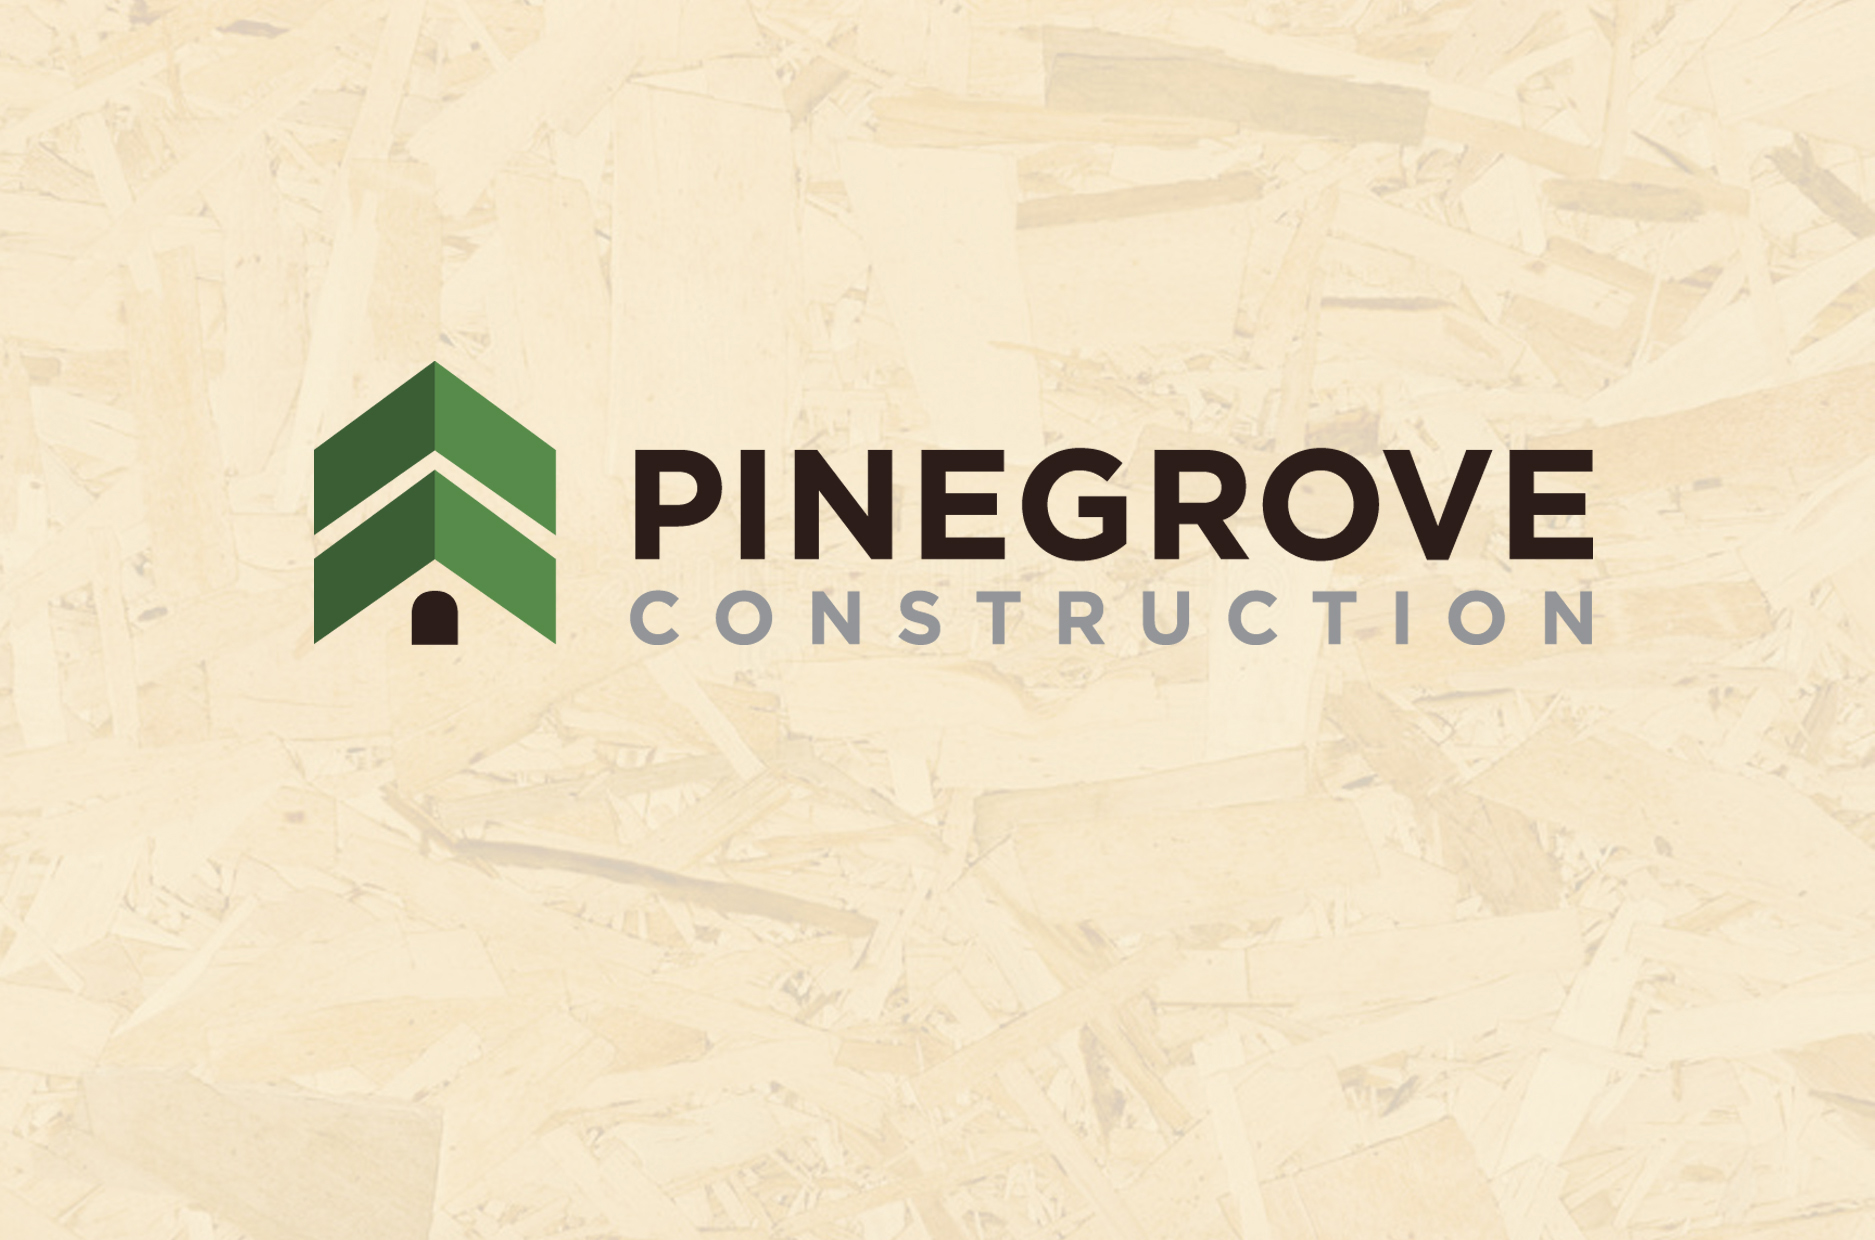 Pinegrove Construction